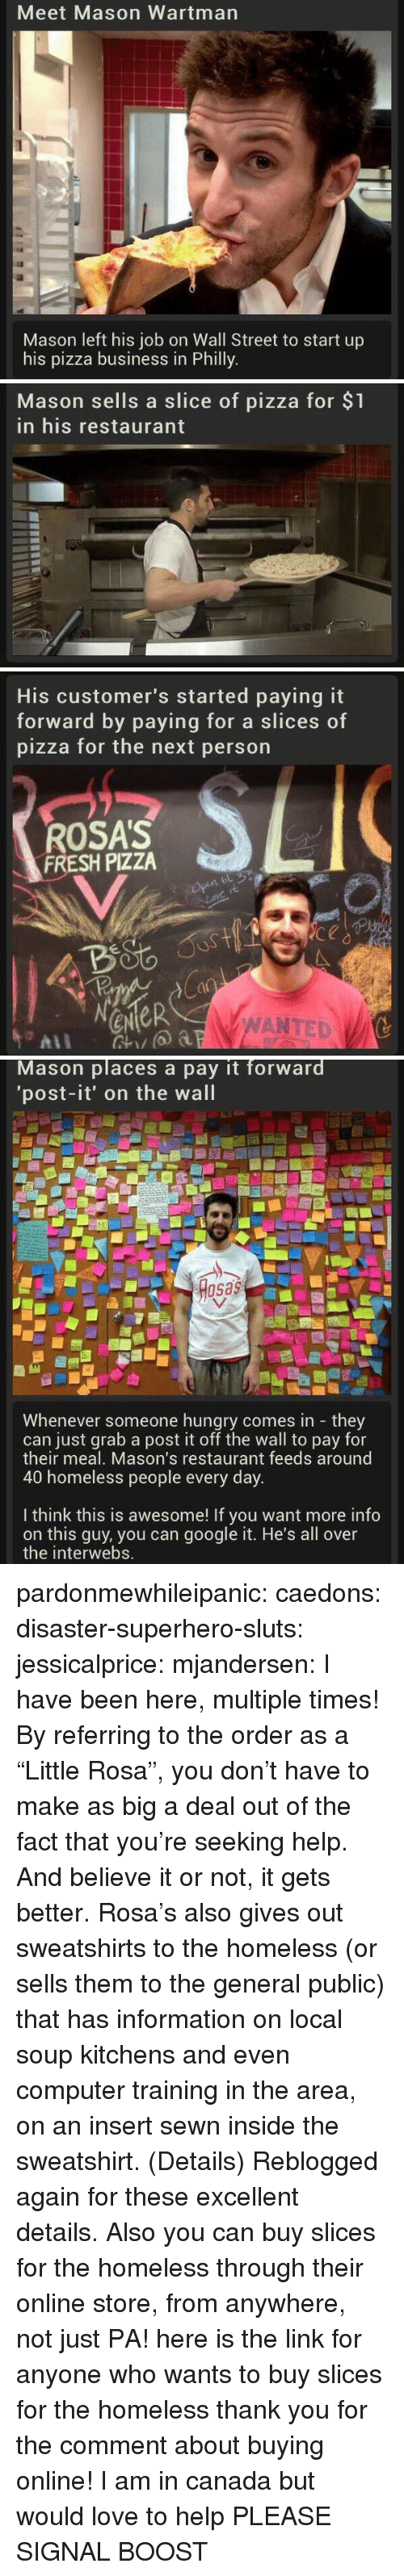 "Fresh, Google, and Homeless: Meet Mason Wartman  Mason left his job on Wall Street to start up  his pizza business in Philly   Mason sells a slice of pizza for $1  in his restaurant   His customer's started paying it  forward by paying for a slice  pizza for the next person  s of  ROSA'S  FRESH PIZZA  4o  a0  eNeR  WANTED   Mason places a pay it forward  'post-it' on the wall  osas  Whenever someone hungry comes in they  can just grab a post it off the wall to pay for  their meal, Mason's restaurant feeds around  40 homeless people every day  I think this is awesome! If you want more info  on this guy, you can google it. He's all over  the interwebs. pardonmewhileipanic: caedons:  disaster-superhero-sluts:  jessicalprice:  mjandersen:  I have been here, multiple times!   By referring to the order as a ""Little Rosa"", you don't have to make as big a deal out of the fact that you're seeking help. And believe it or not, it gets better. Rosa's also gives out sweatshirts to the homeless (or sells them to the general public) that has information on local soup kitchens and even computer training in the area, on an insert sewn inside the sweatshirt. (Details)  Reblogged again for these excellent details.  Also you can buy slices for the homeless through their online store, from anywhere, not just PA!  here is the link for anyone who wants to buy slices for the homeless  thank you for the comment about buying online! I am in canada but would love to help PLEASE SIGNAL BOOST"